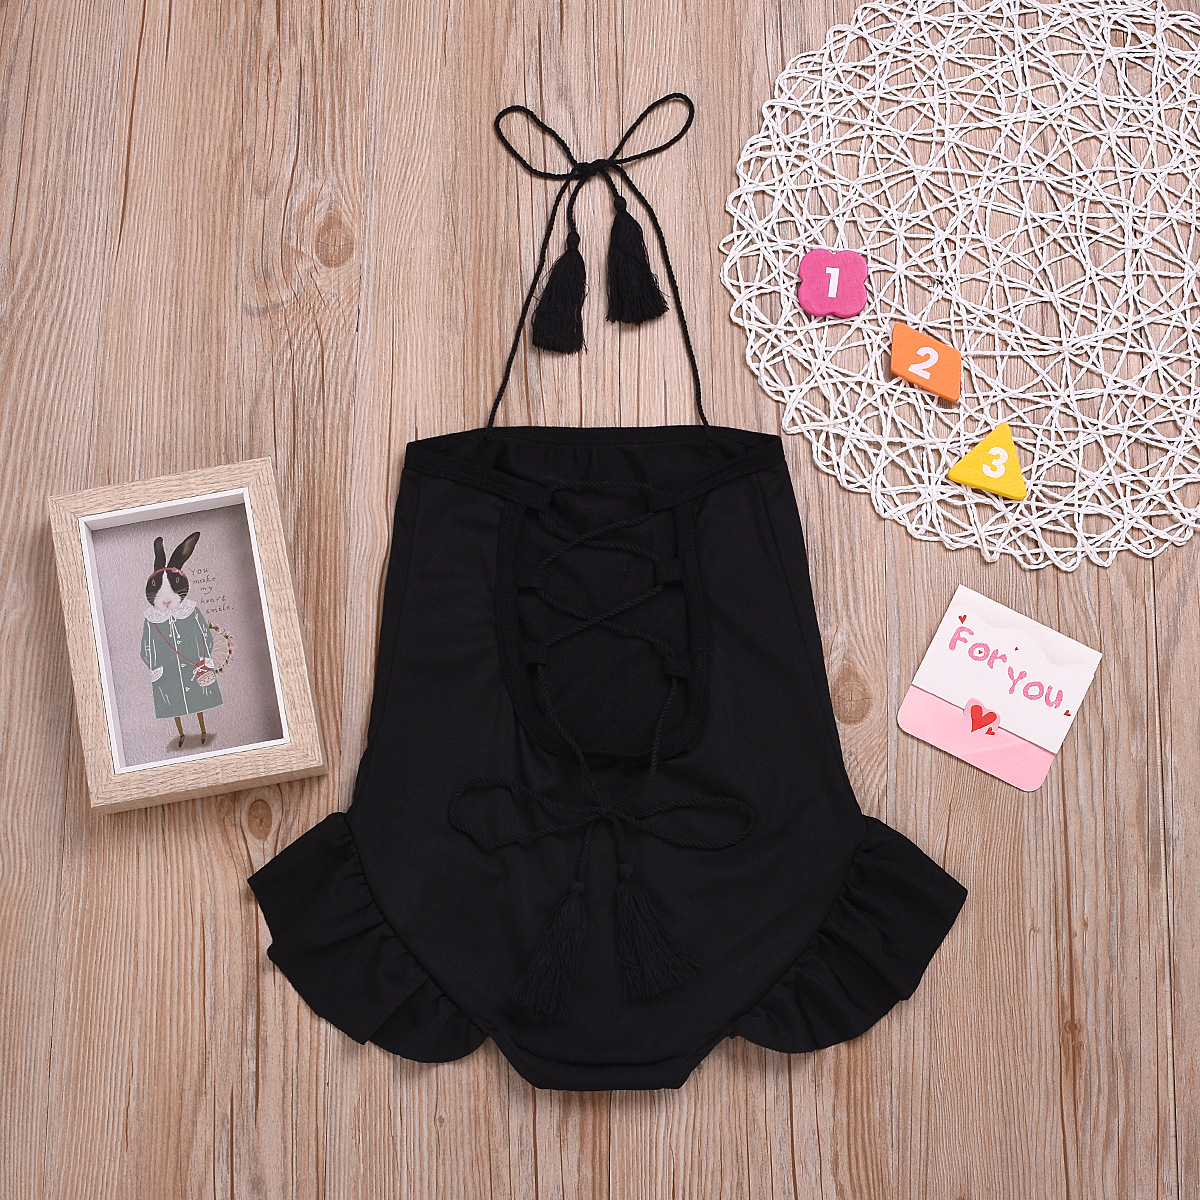 Solid Color Lace-up GIRL'S Swimsuit Backless Black And White With Pattern Hot Selling Children Dress